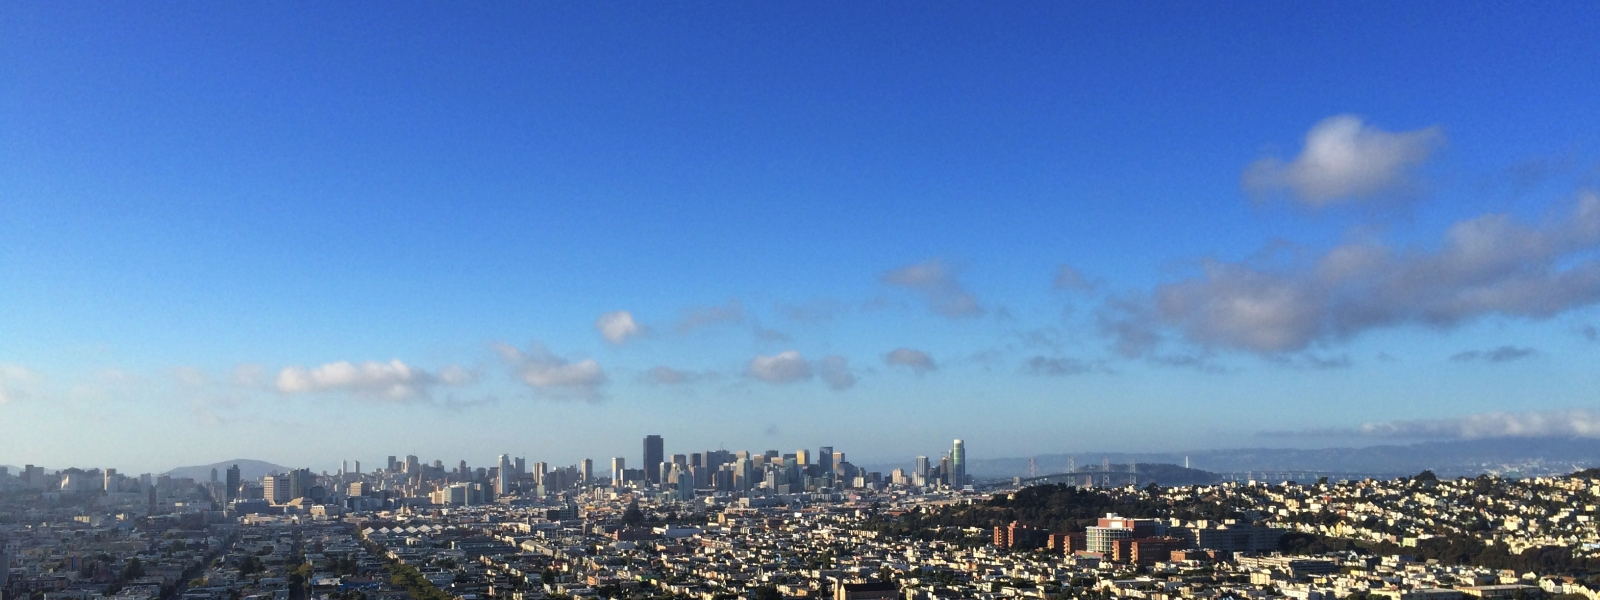 Skyline from the Mission